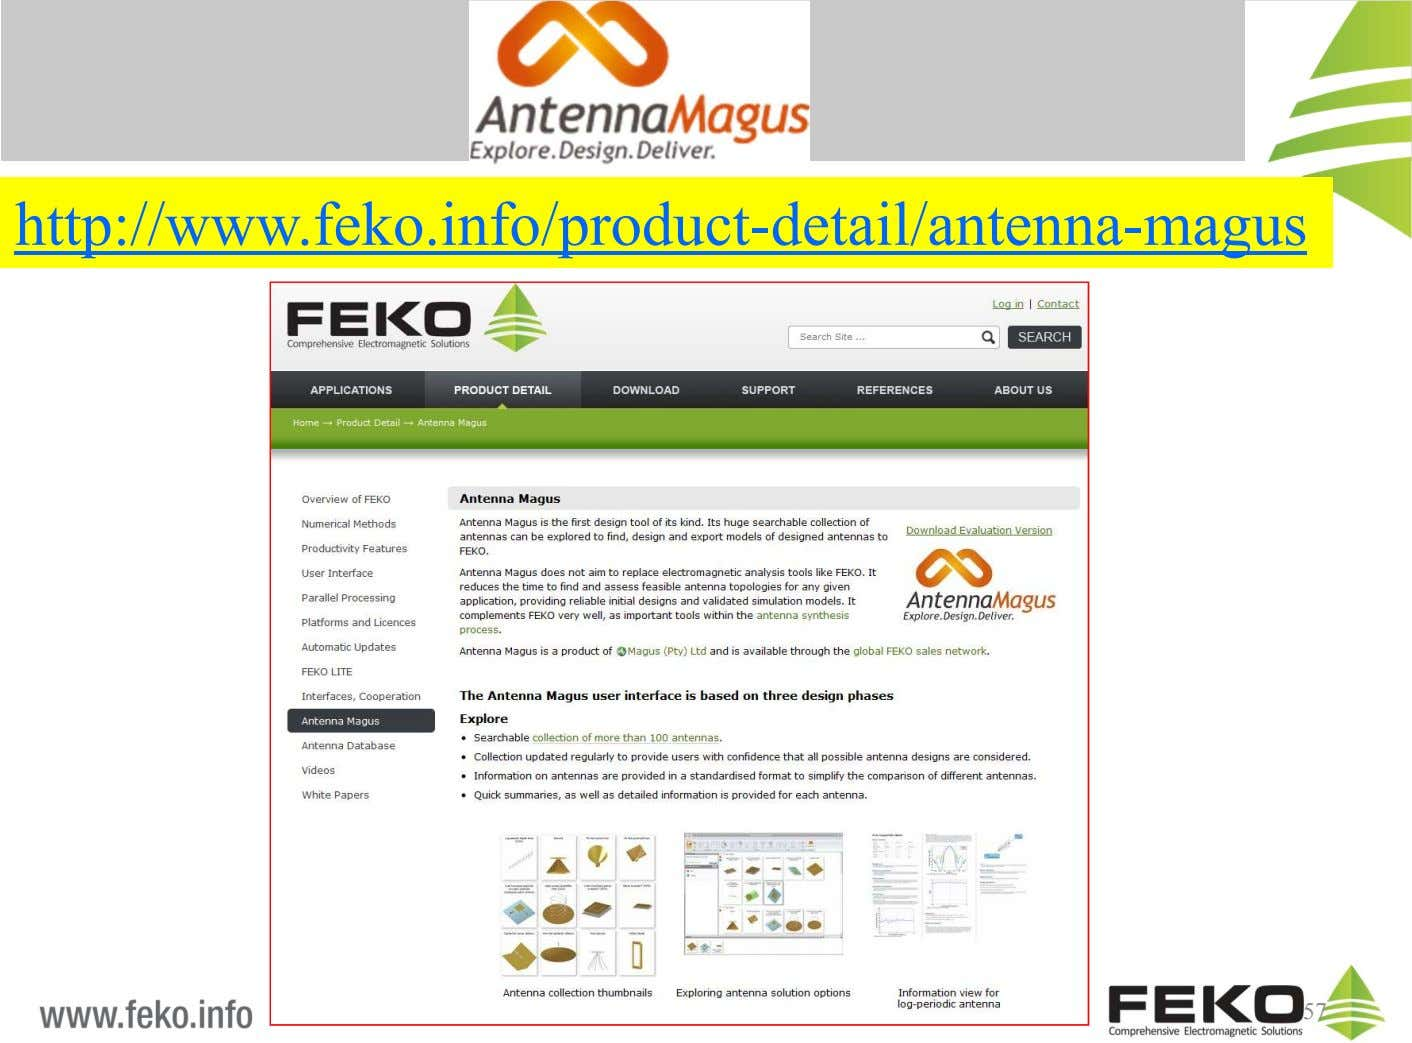 http://www.feko.info/product-detail/antenna-magus 57